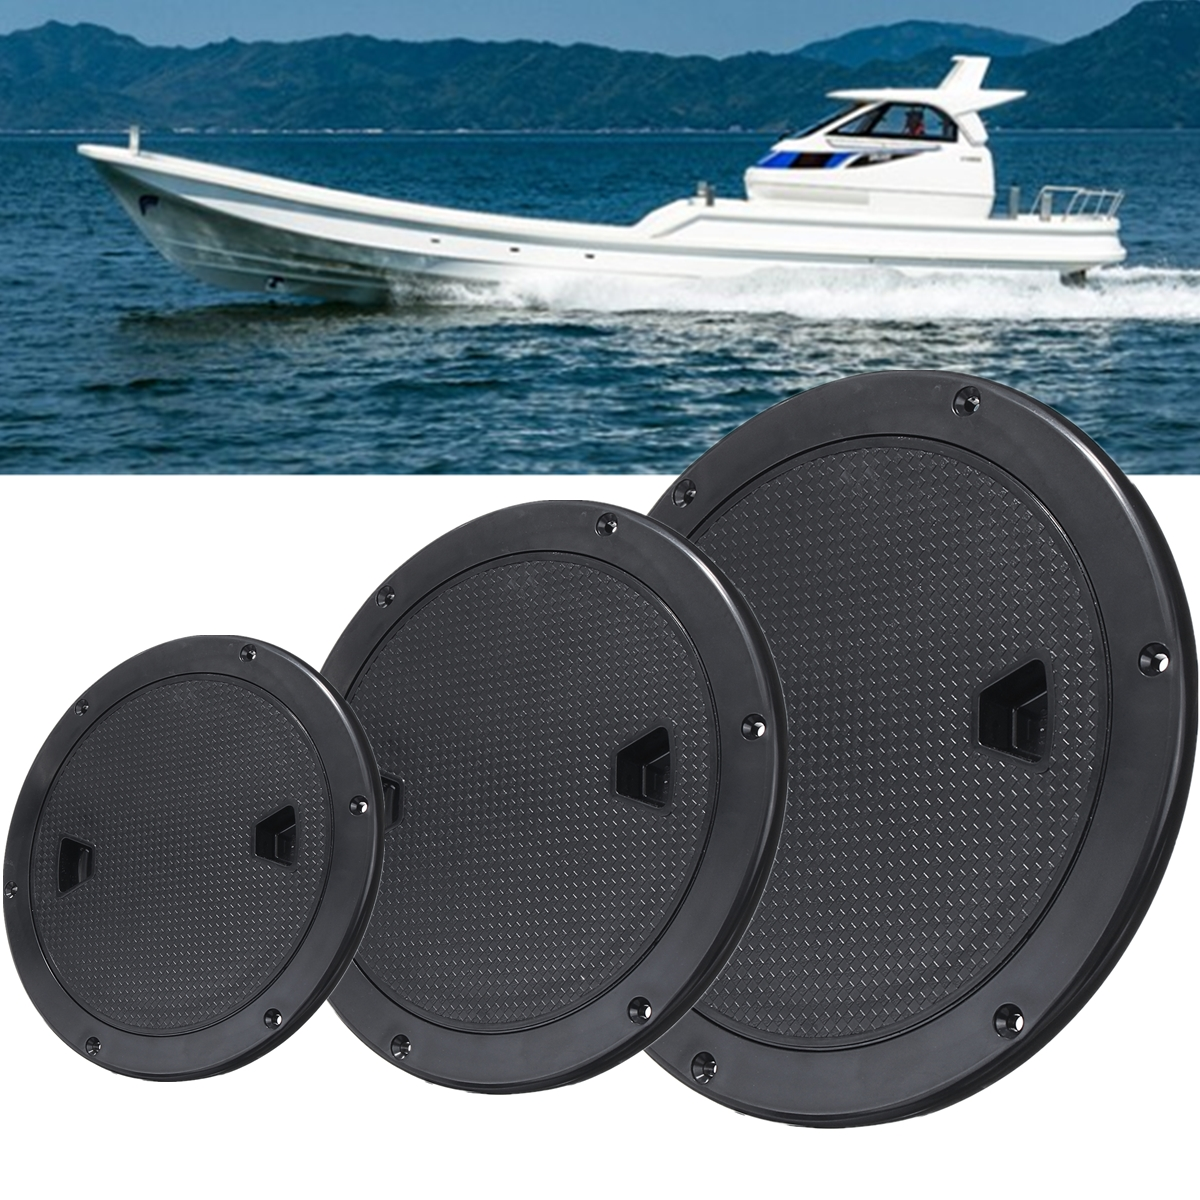 Plastic Twist Out Marine <font><b>Boat</b></font> Caravan Deck Compartment Access <font><b>Hatch</b></font> Plate <font><b>Black</b></font> 4/6/8 inch ABS Anti-ultraviolet Reinforced Lid image